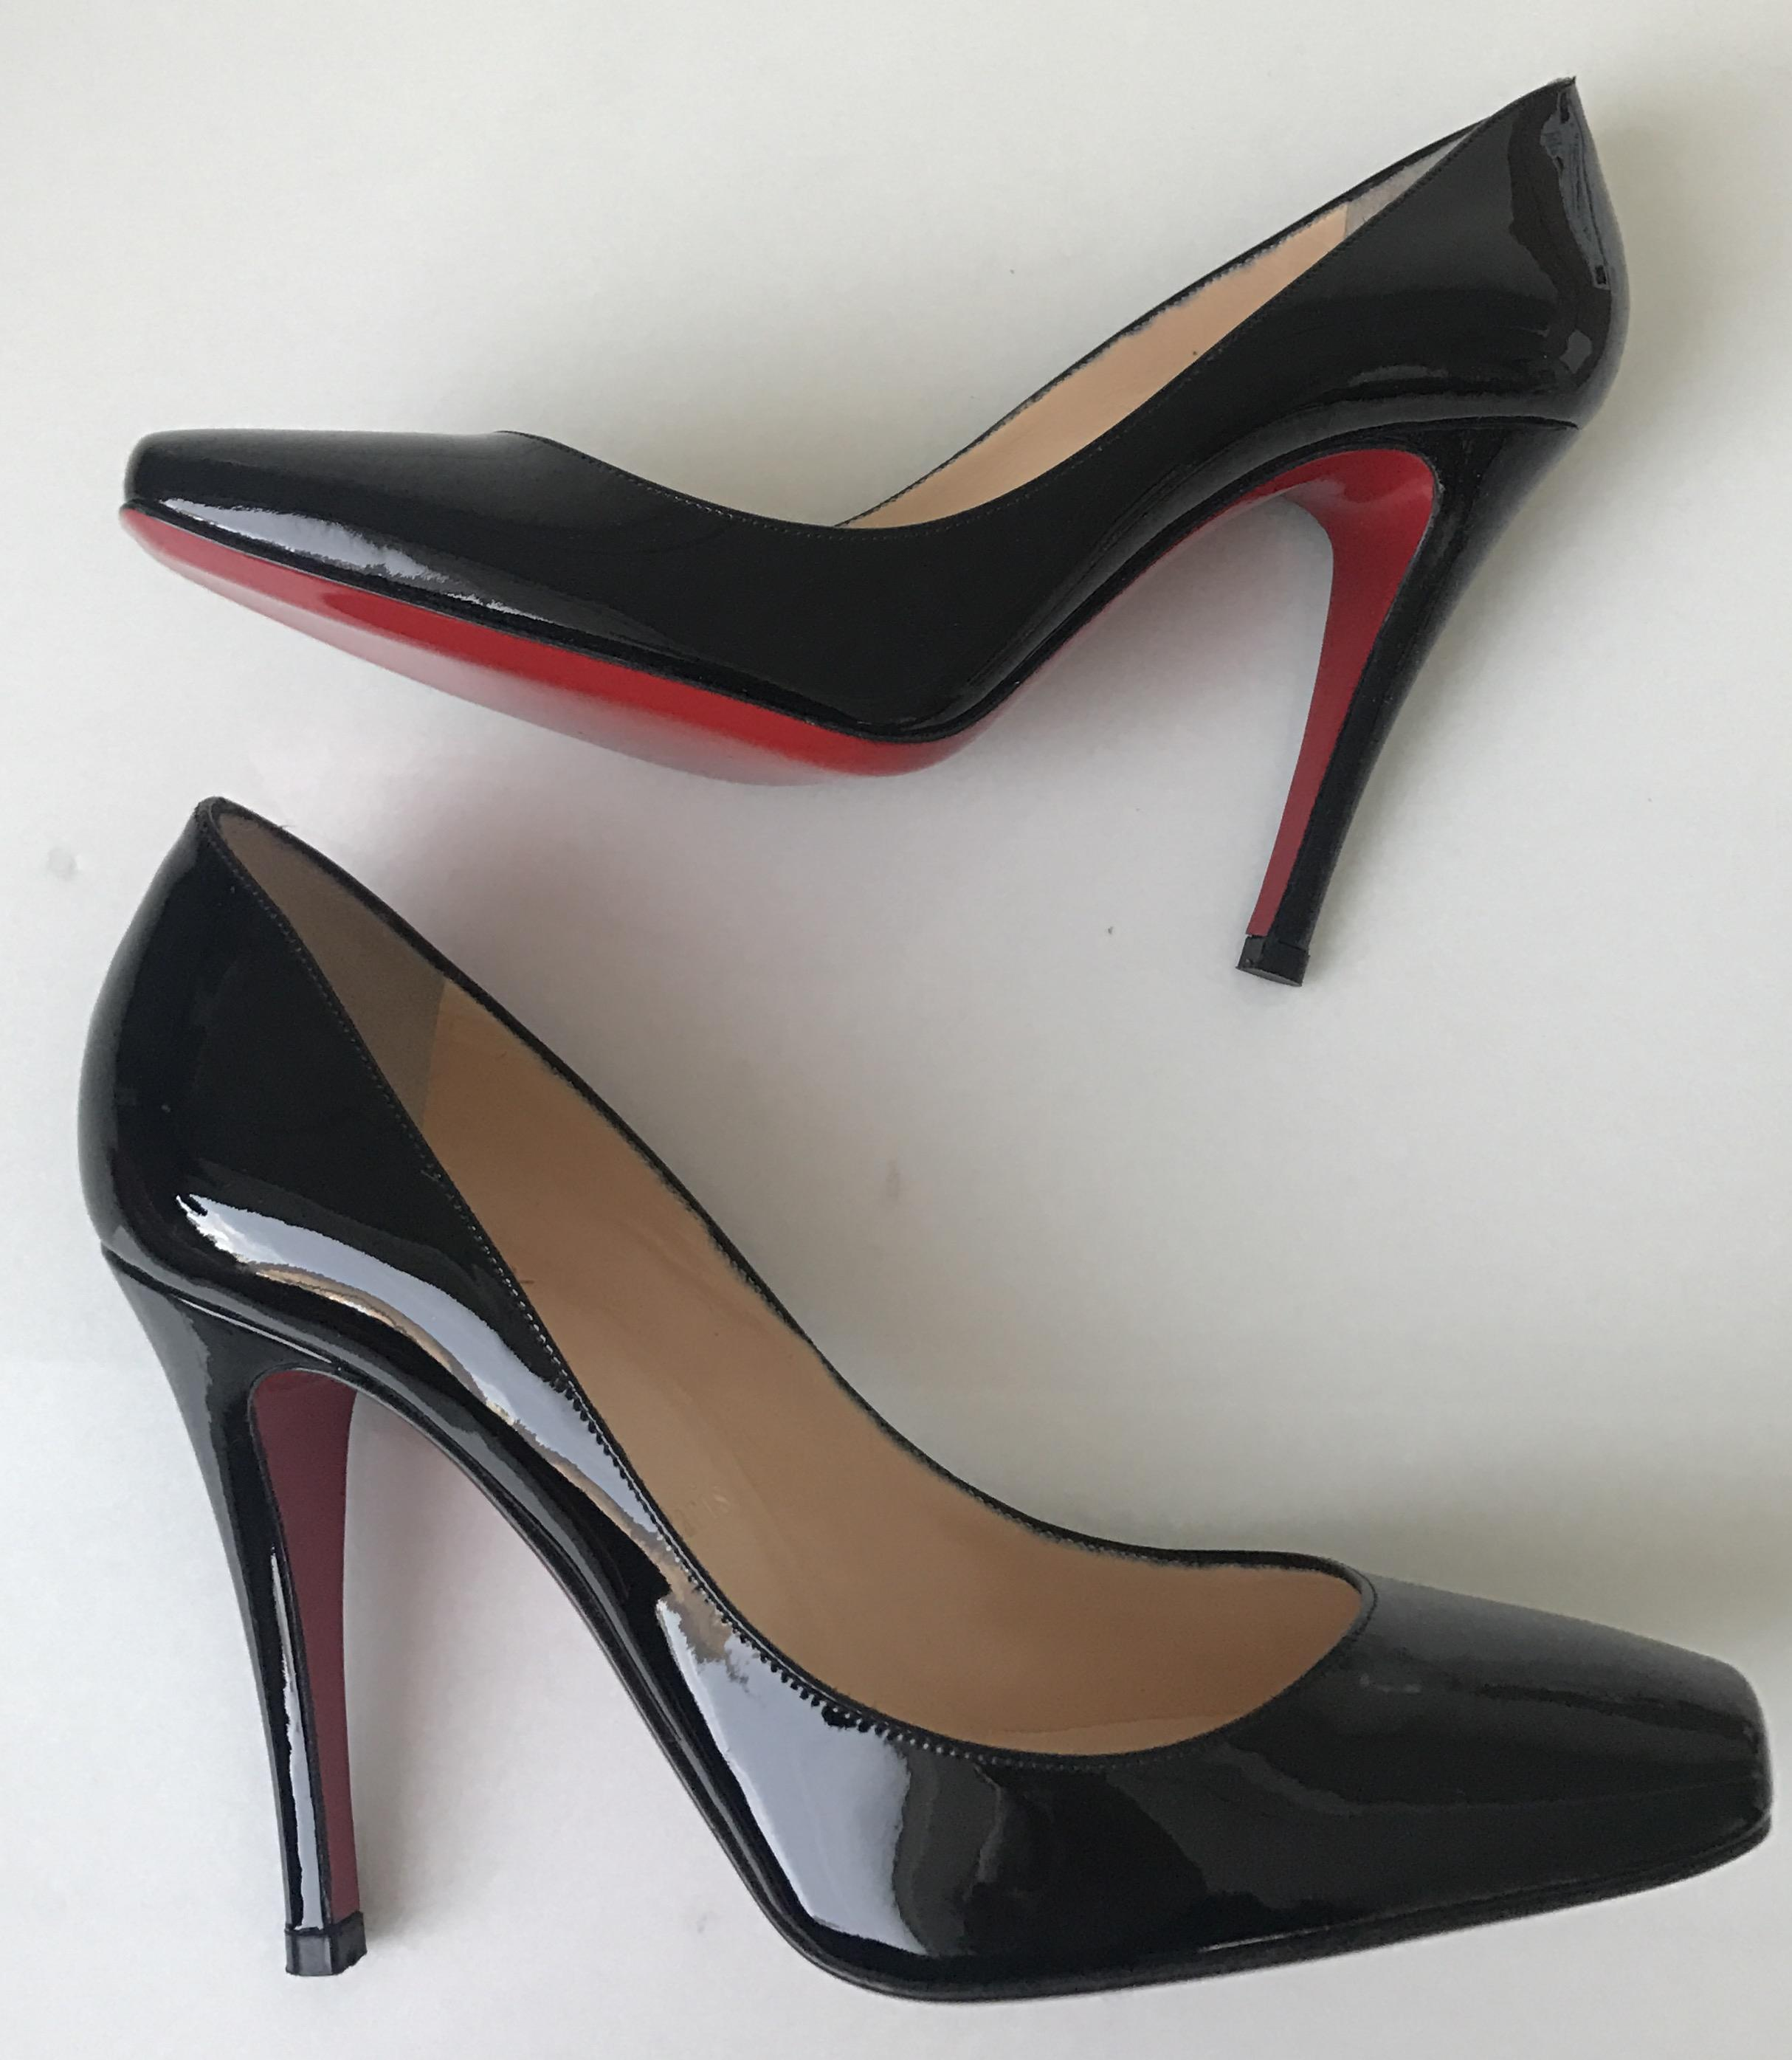 sale newest for sale cheap price from china Christian Louboutin Particule 100 Patent Leather Pumps fFHRB